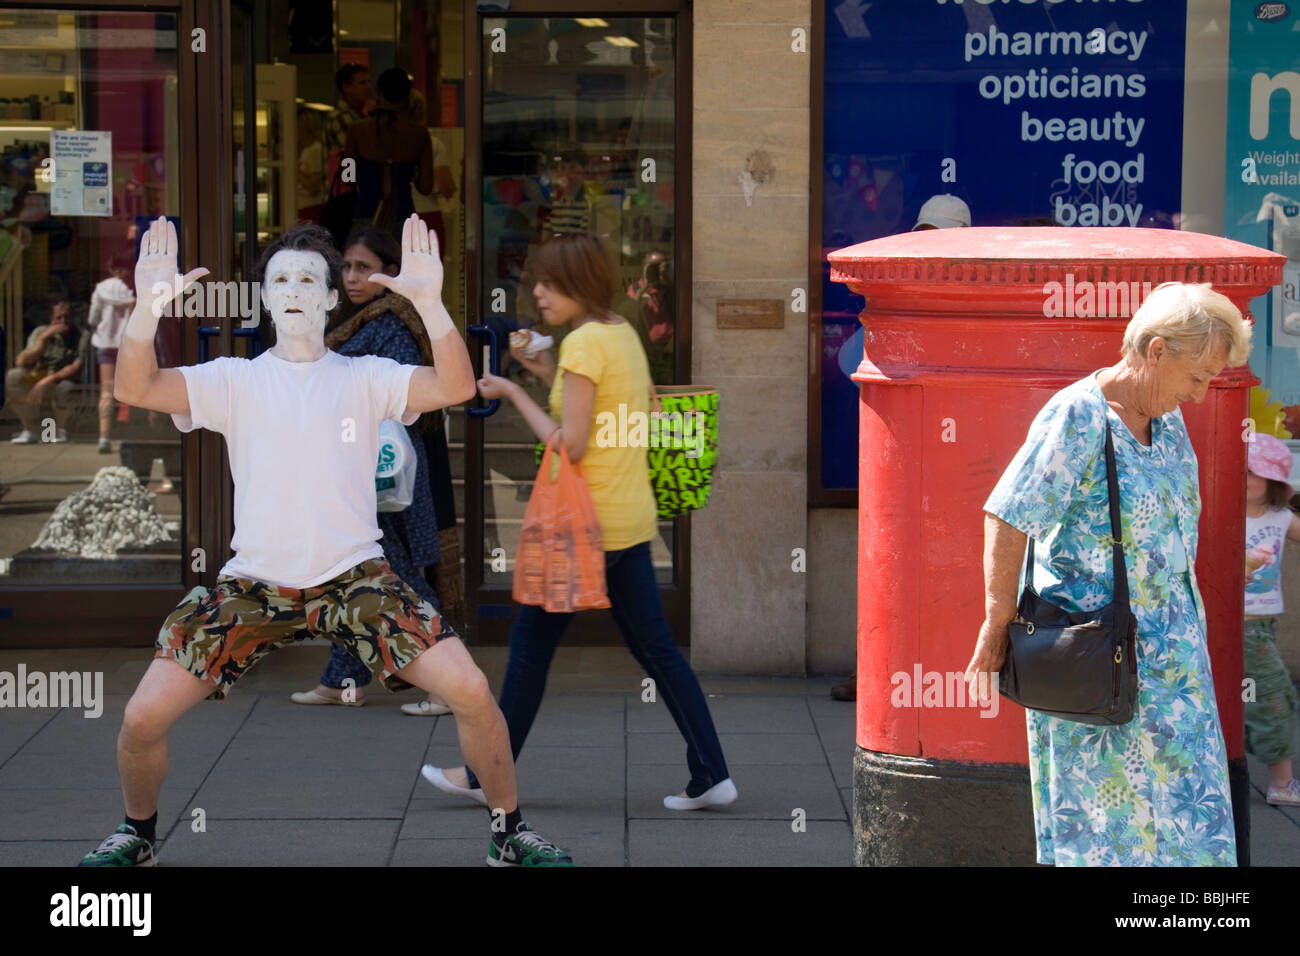 A mime artist being ignored on Sidney Street, Cambridge, UK - Stock Image